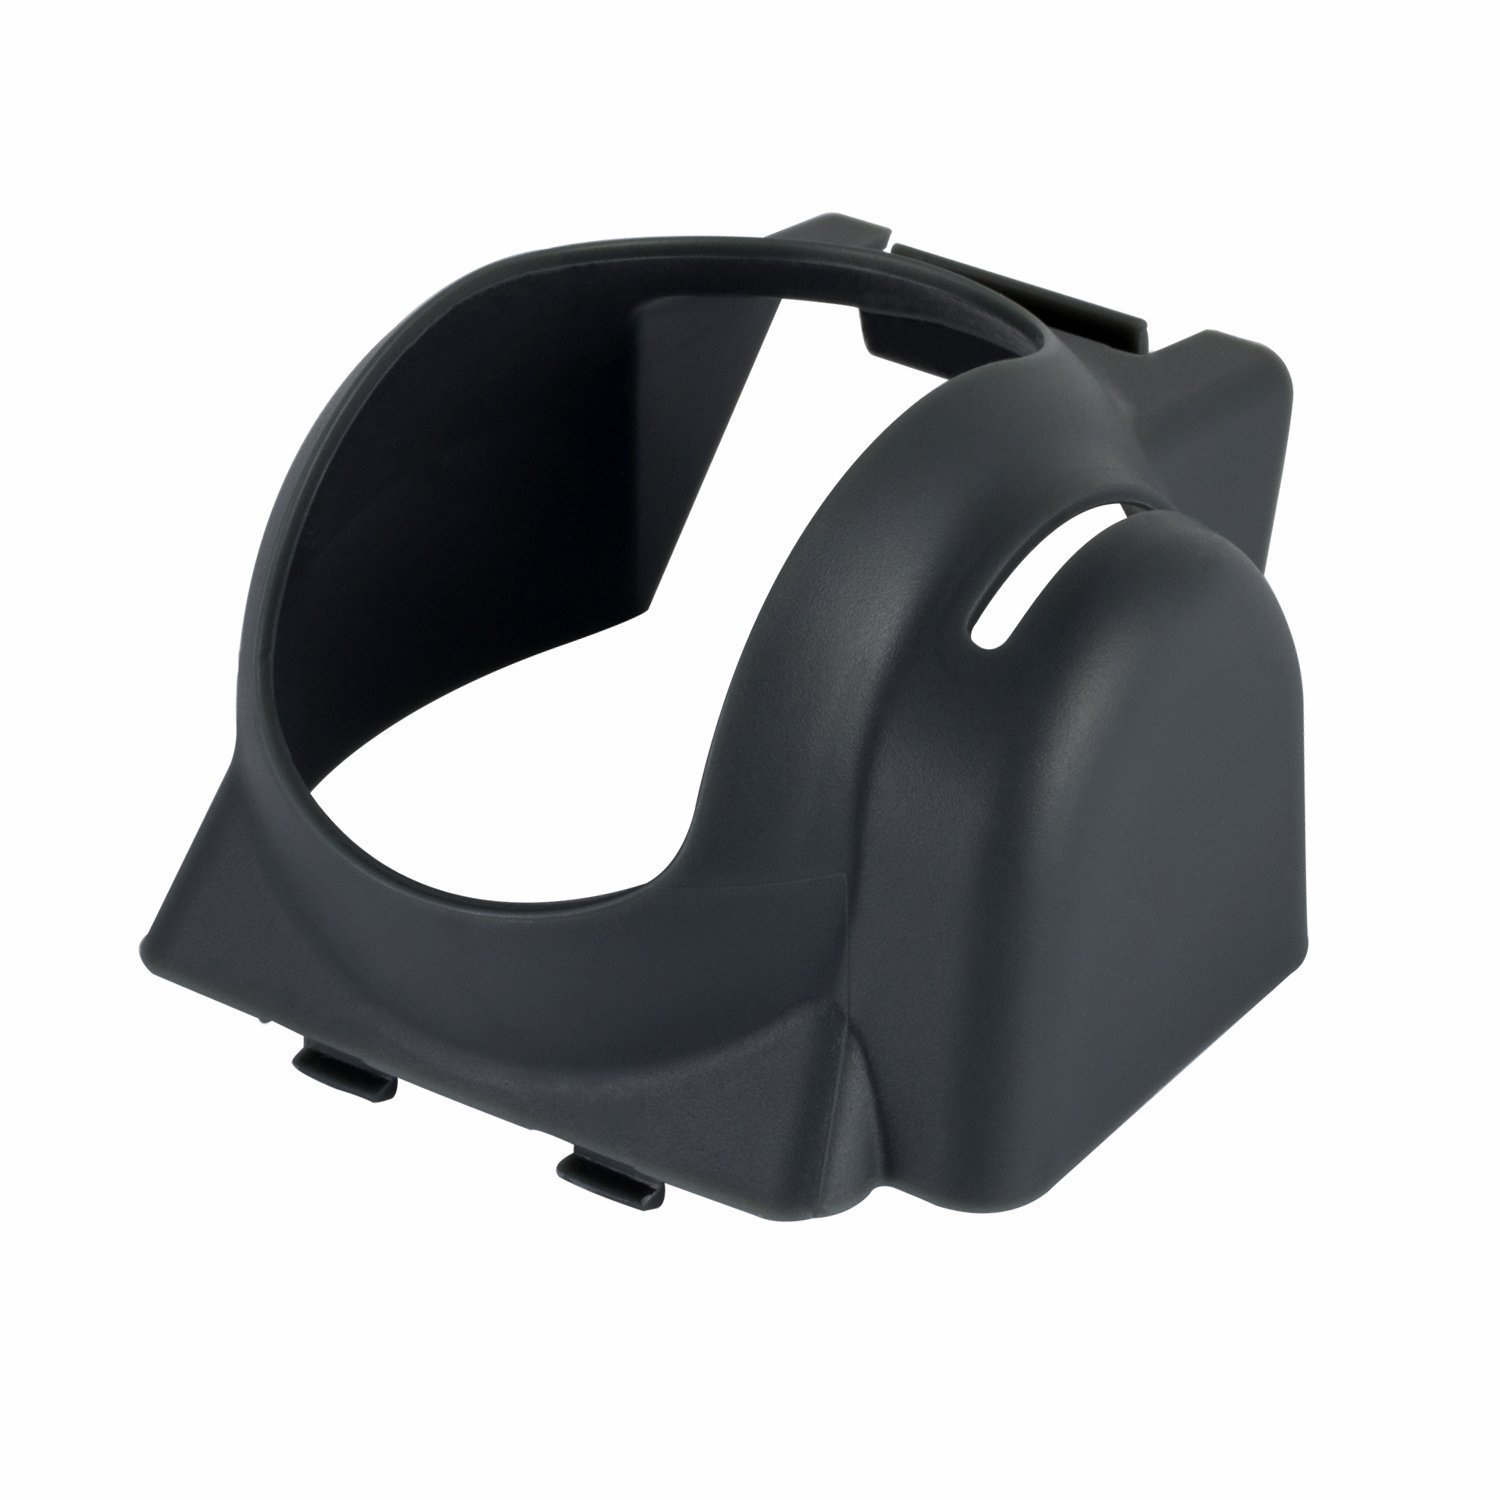 Ultimaxx MAVIC LENS HOOD/ GIMB